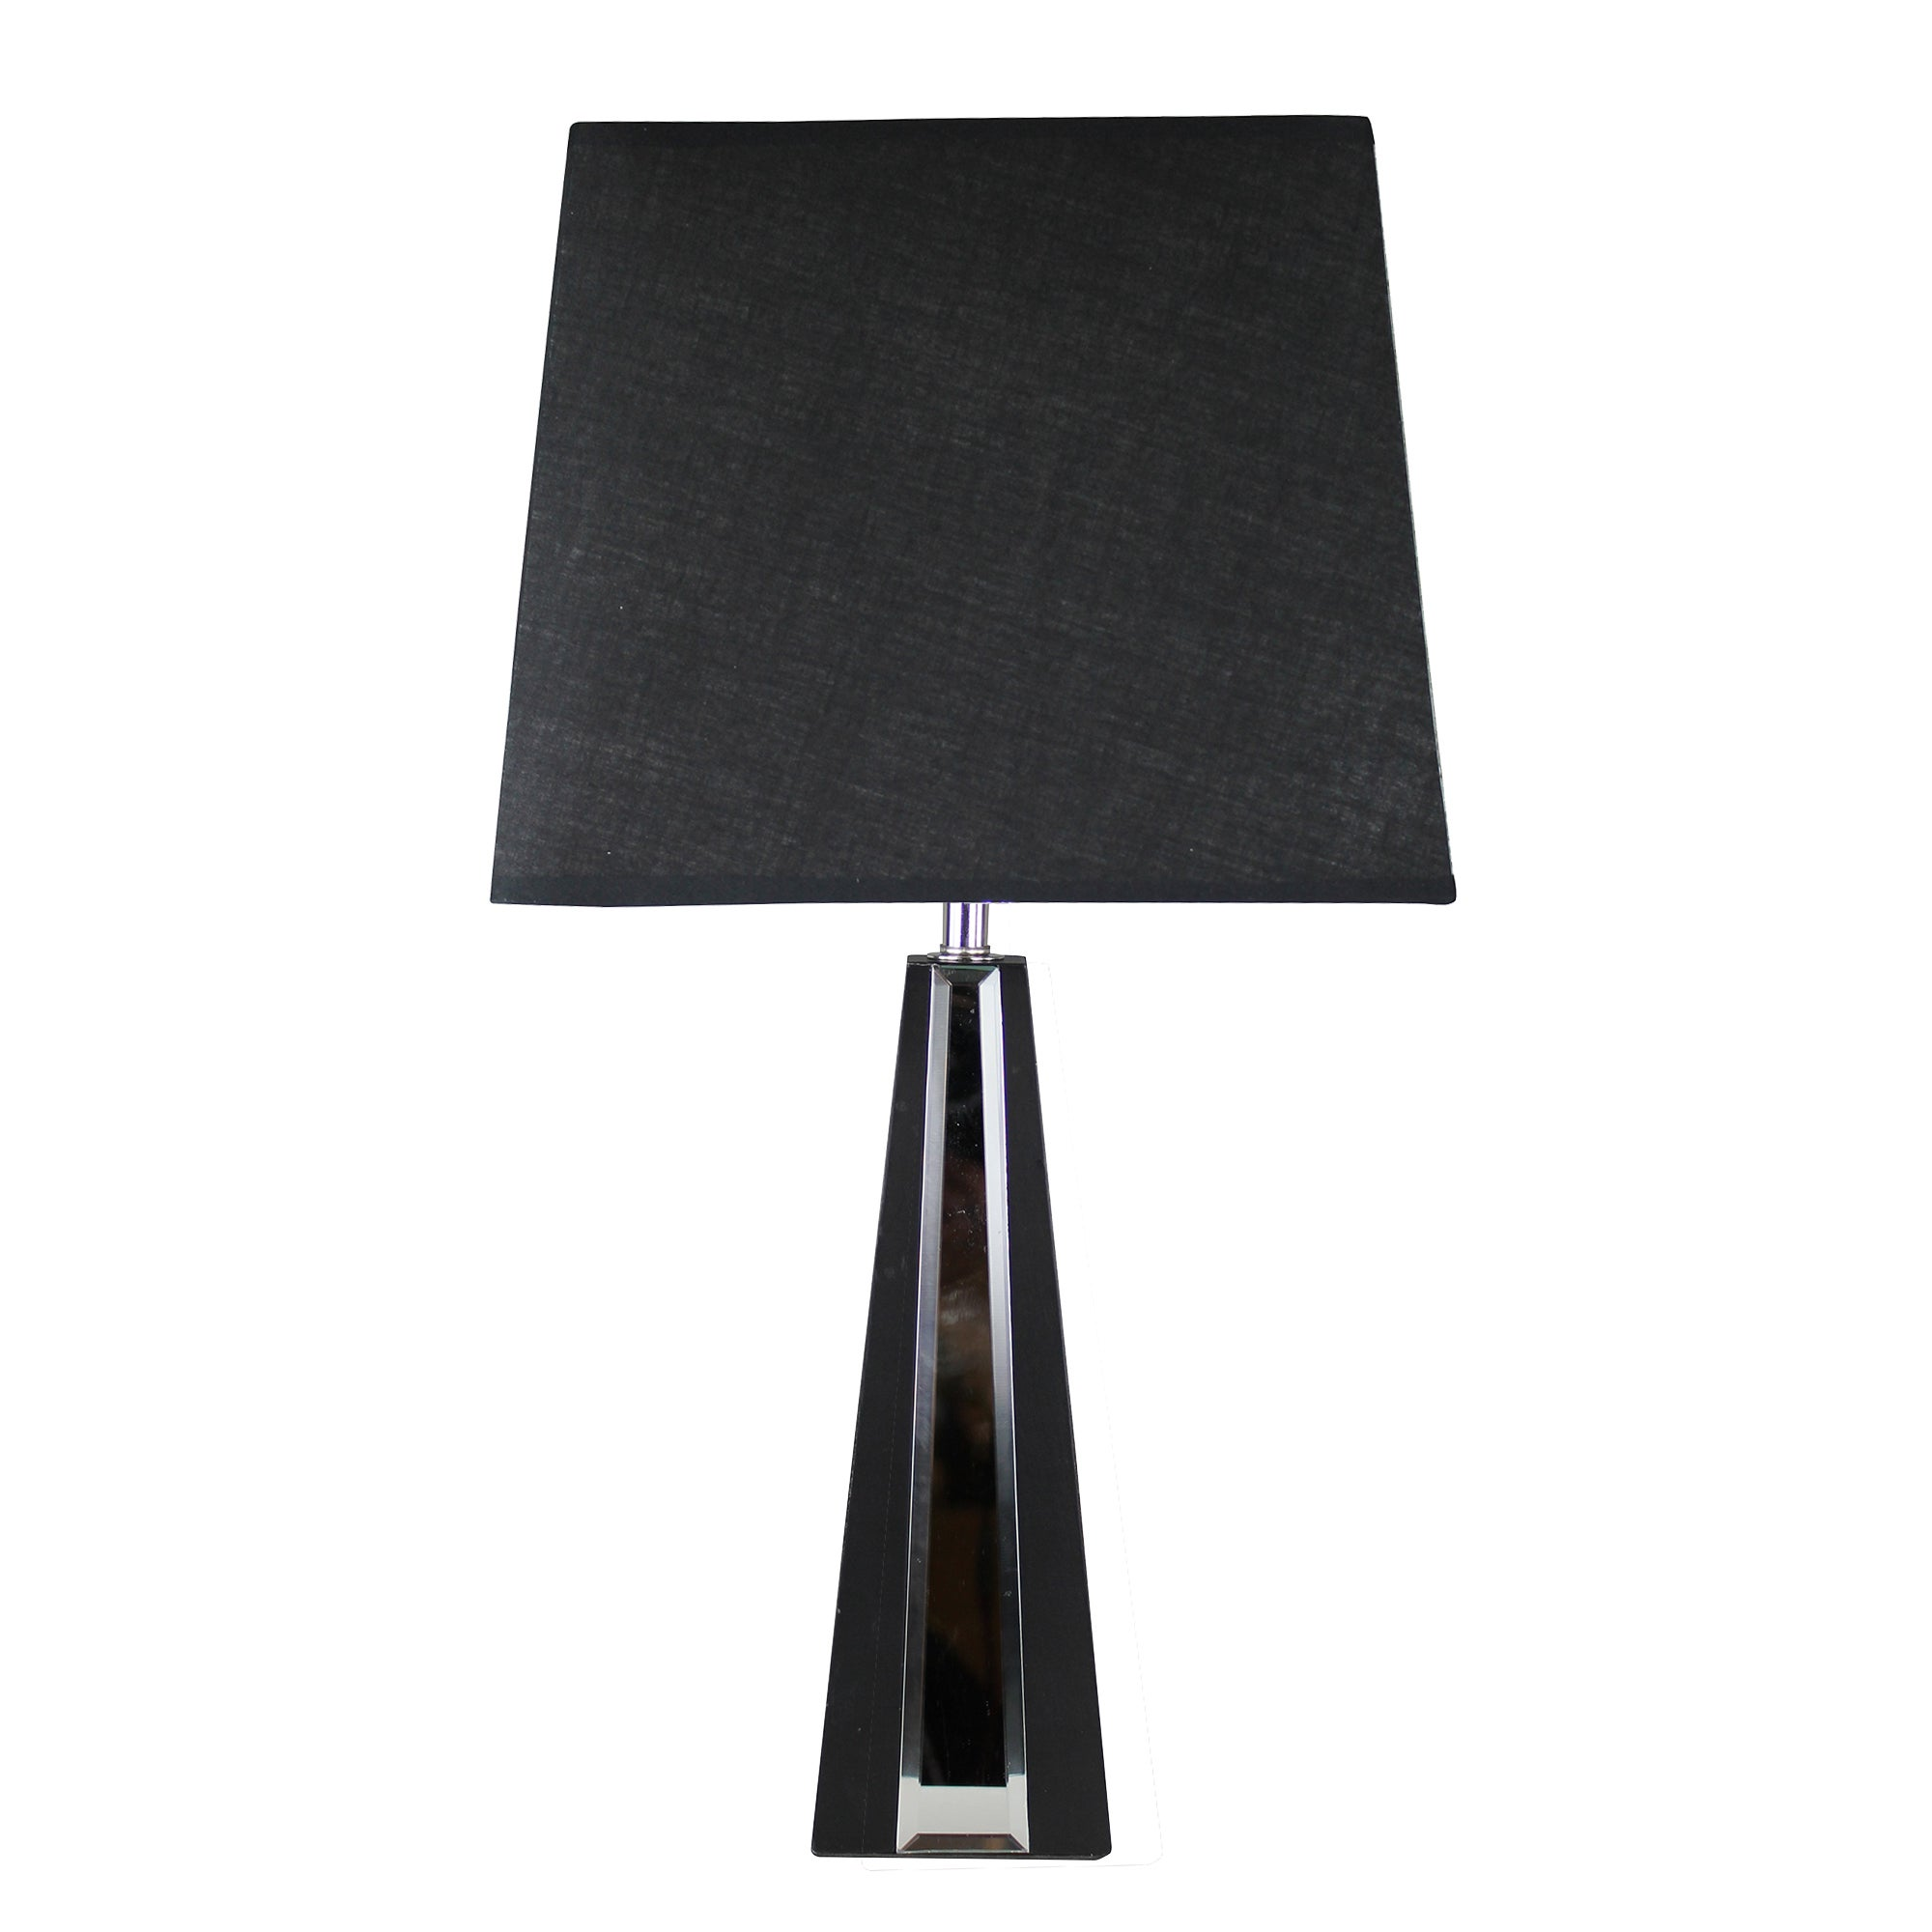 Photo of Pyramid mirror table lamp black